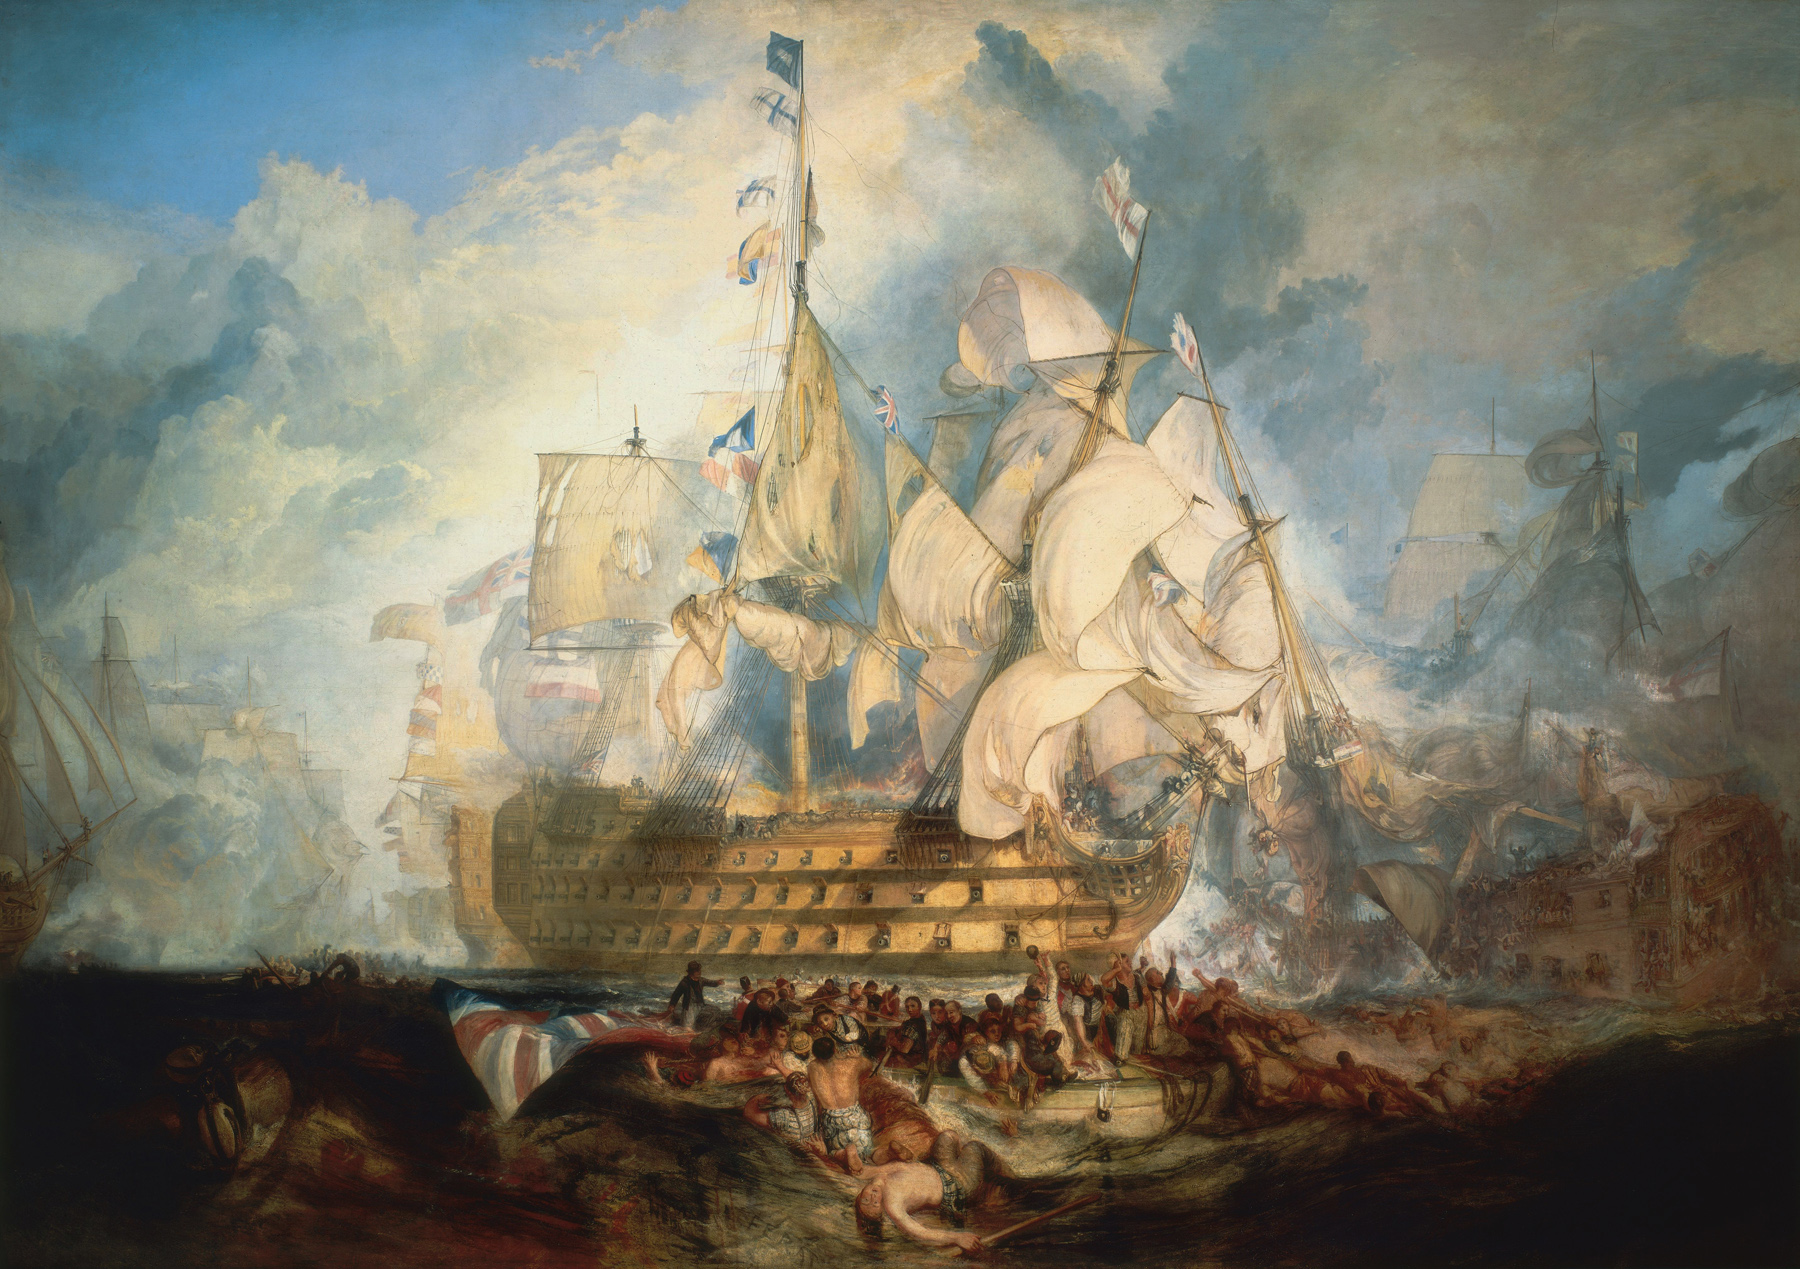 The Battle of Trafalgar by J. M. W. Turner (oil on canvas, 1822–1824)